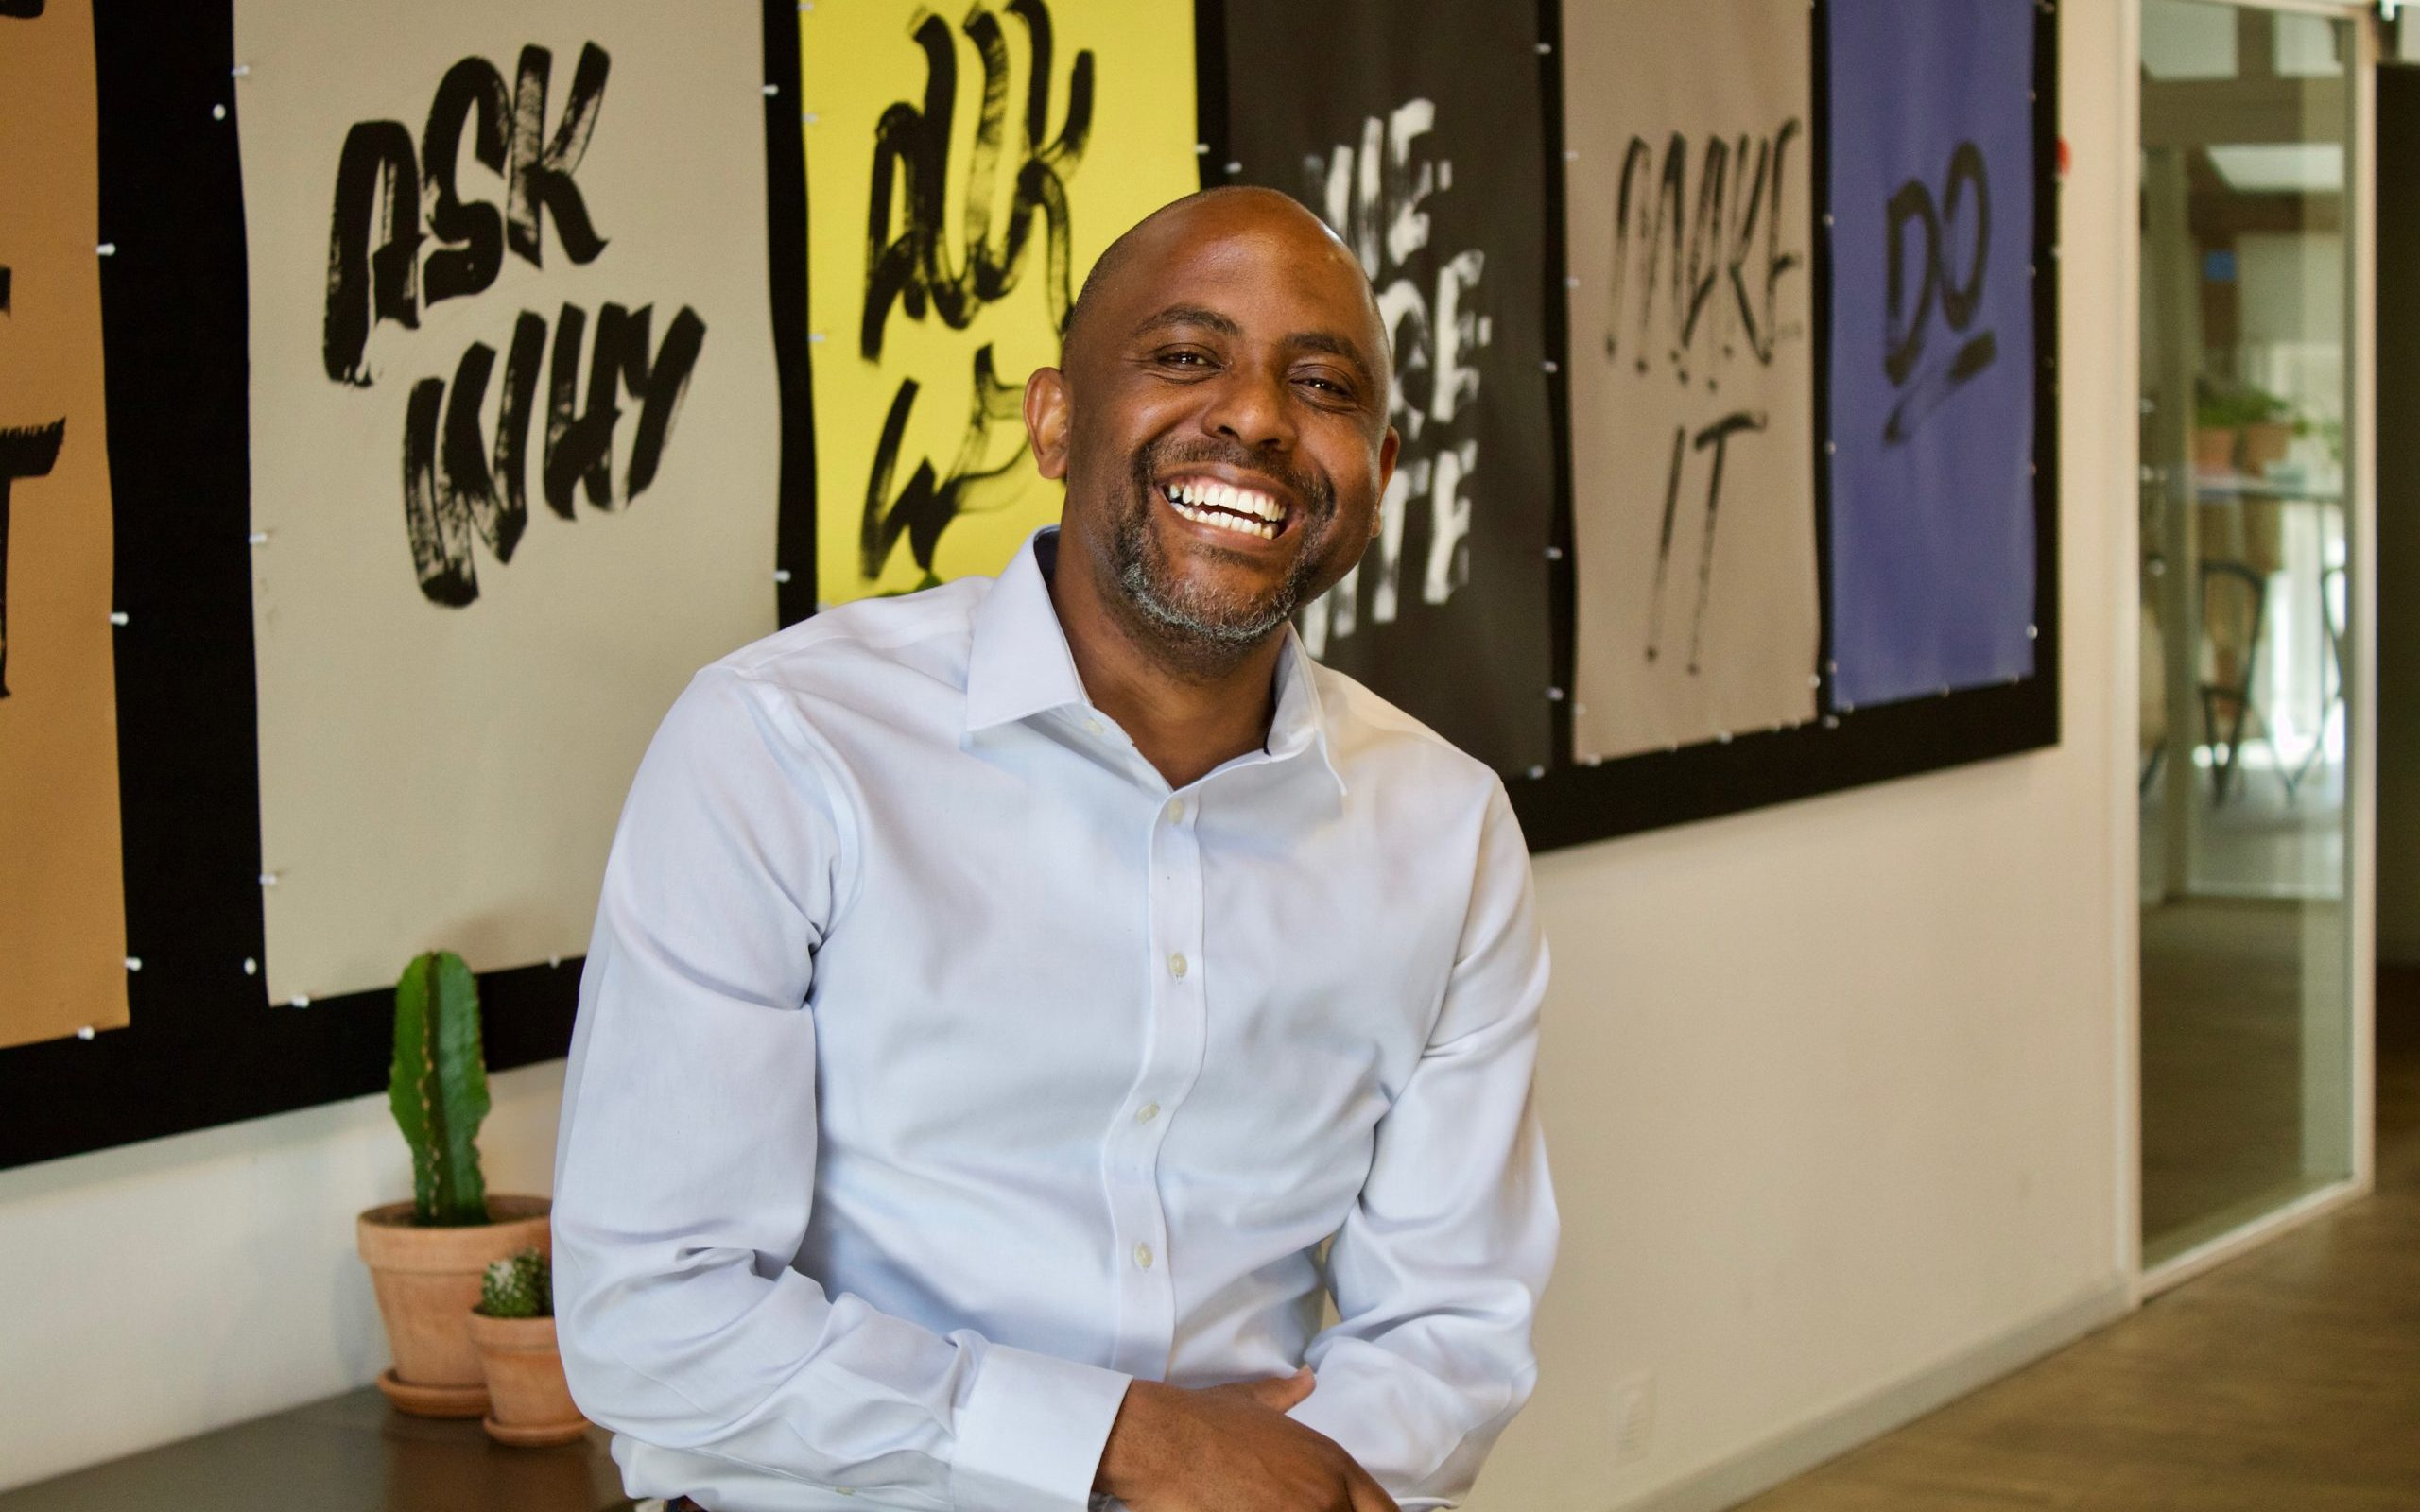 Pirate of Innovation – interview with Tendayi Viki